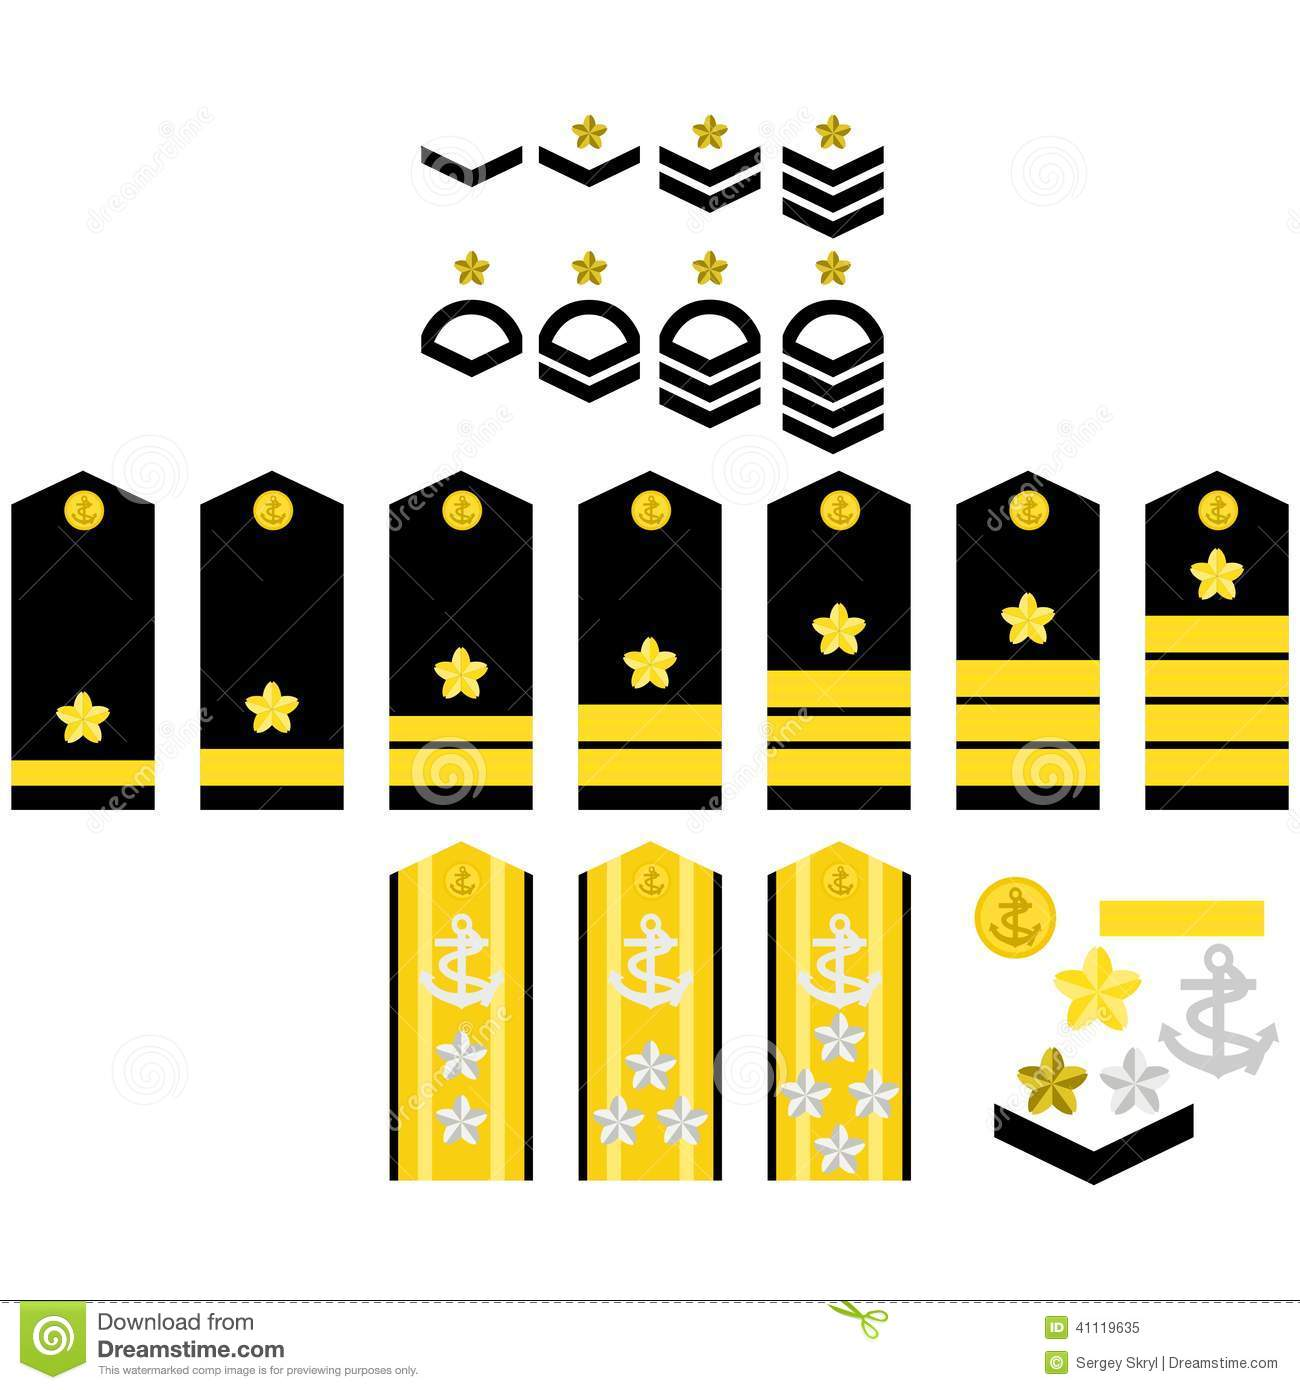 Navy Insignia Clipart - Clipart Kid